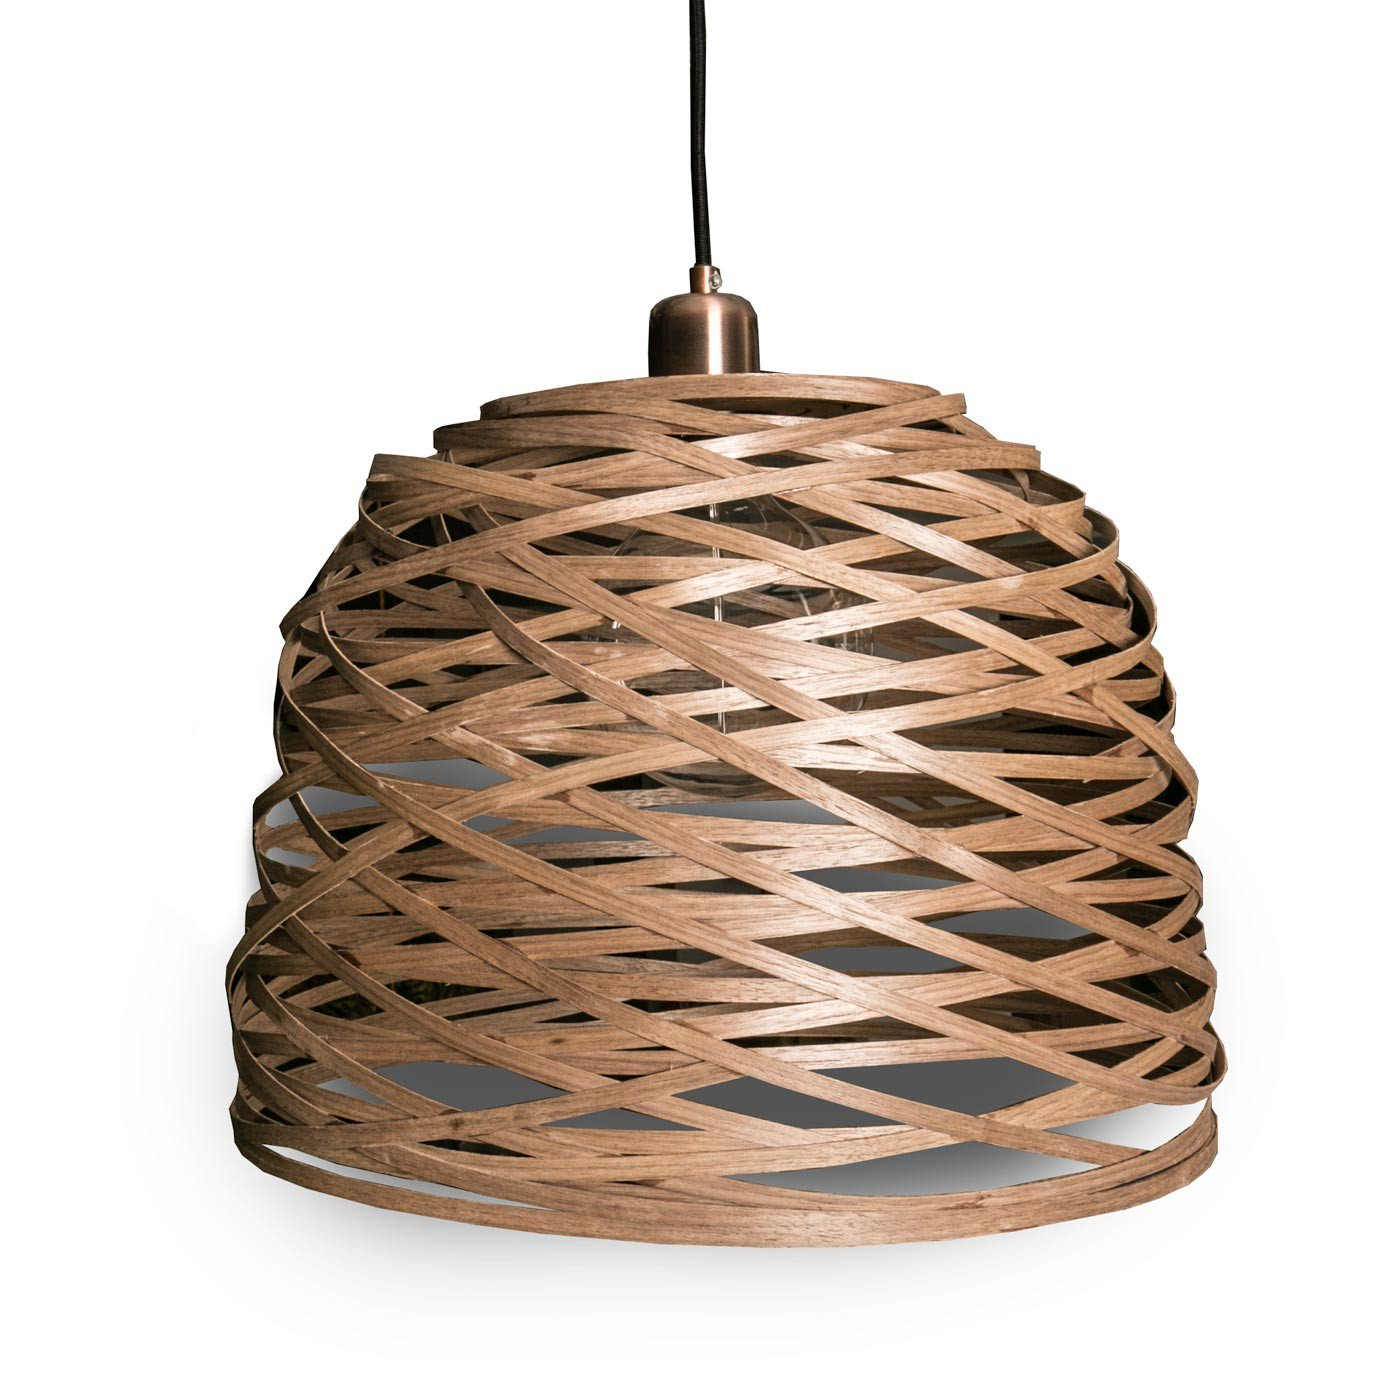 Eco friendly designers tom raffield the interior editor creel pendant available from heals arubaitofo Images